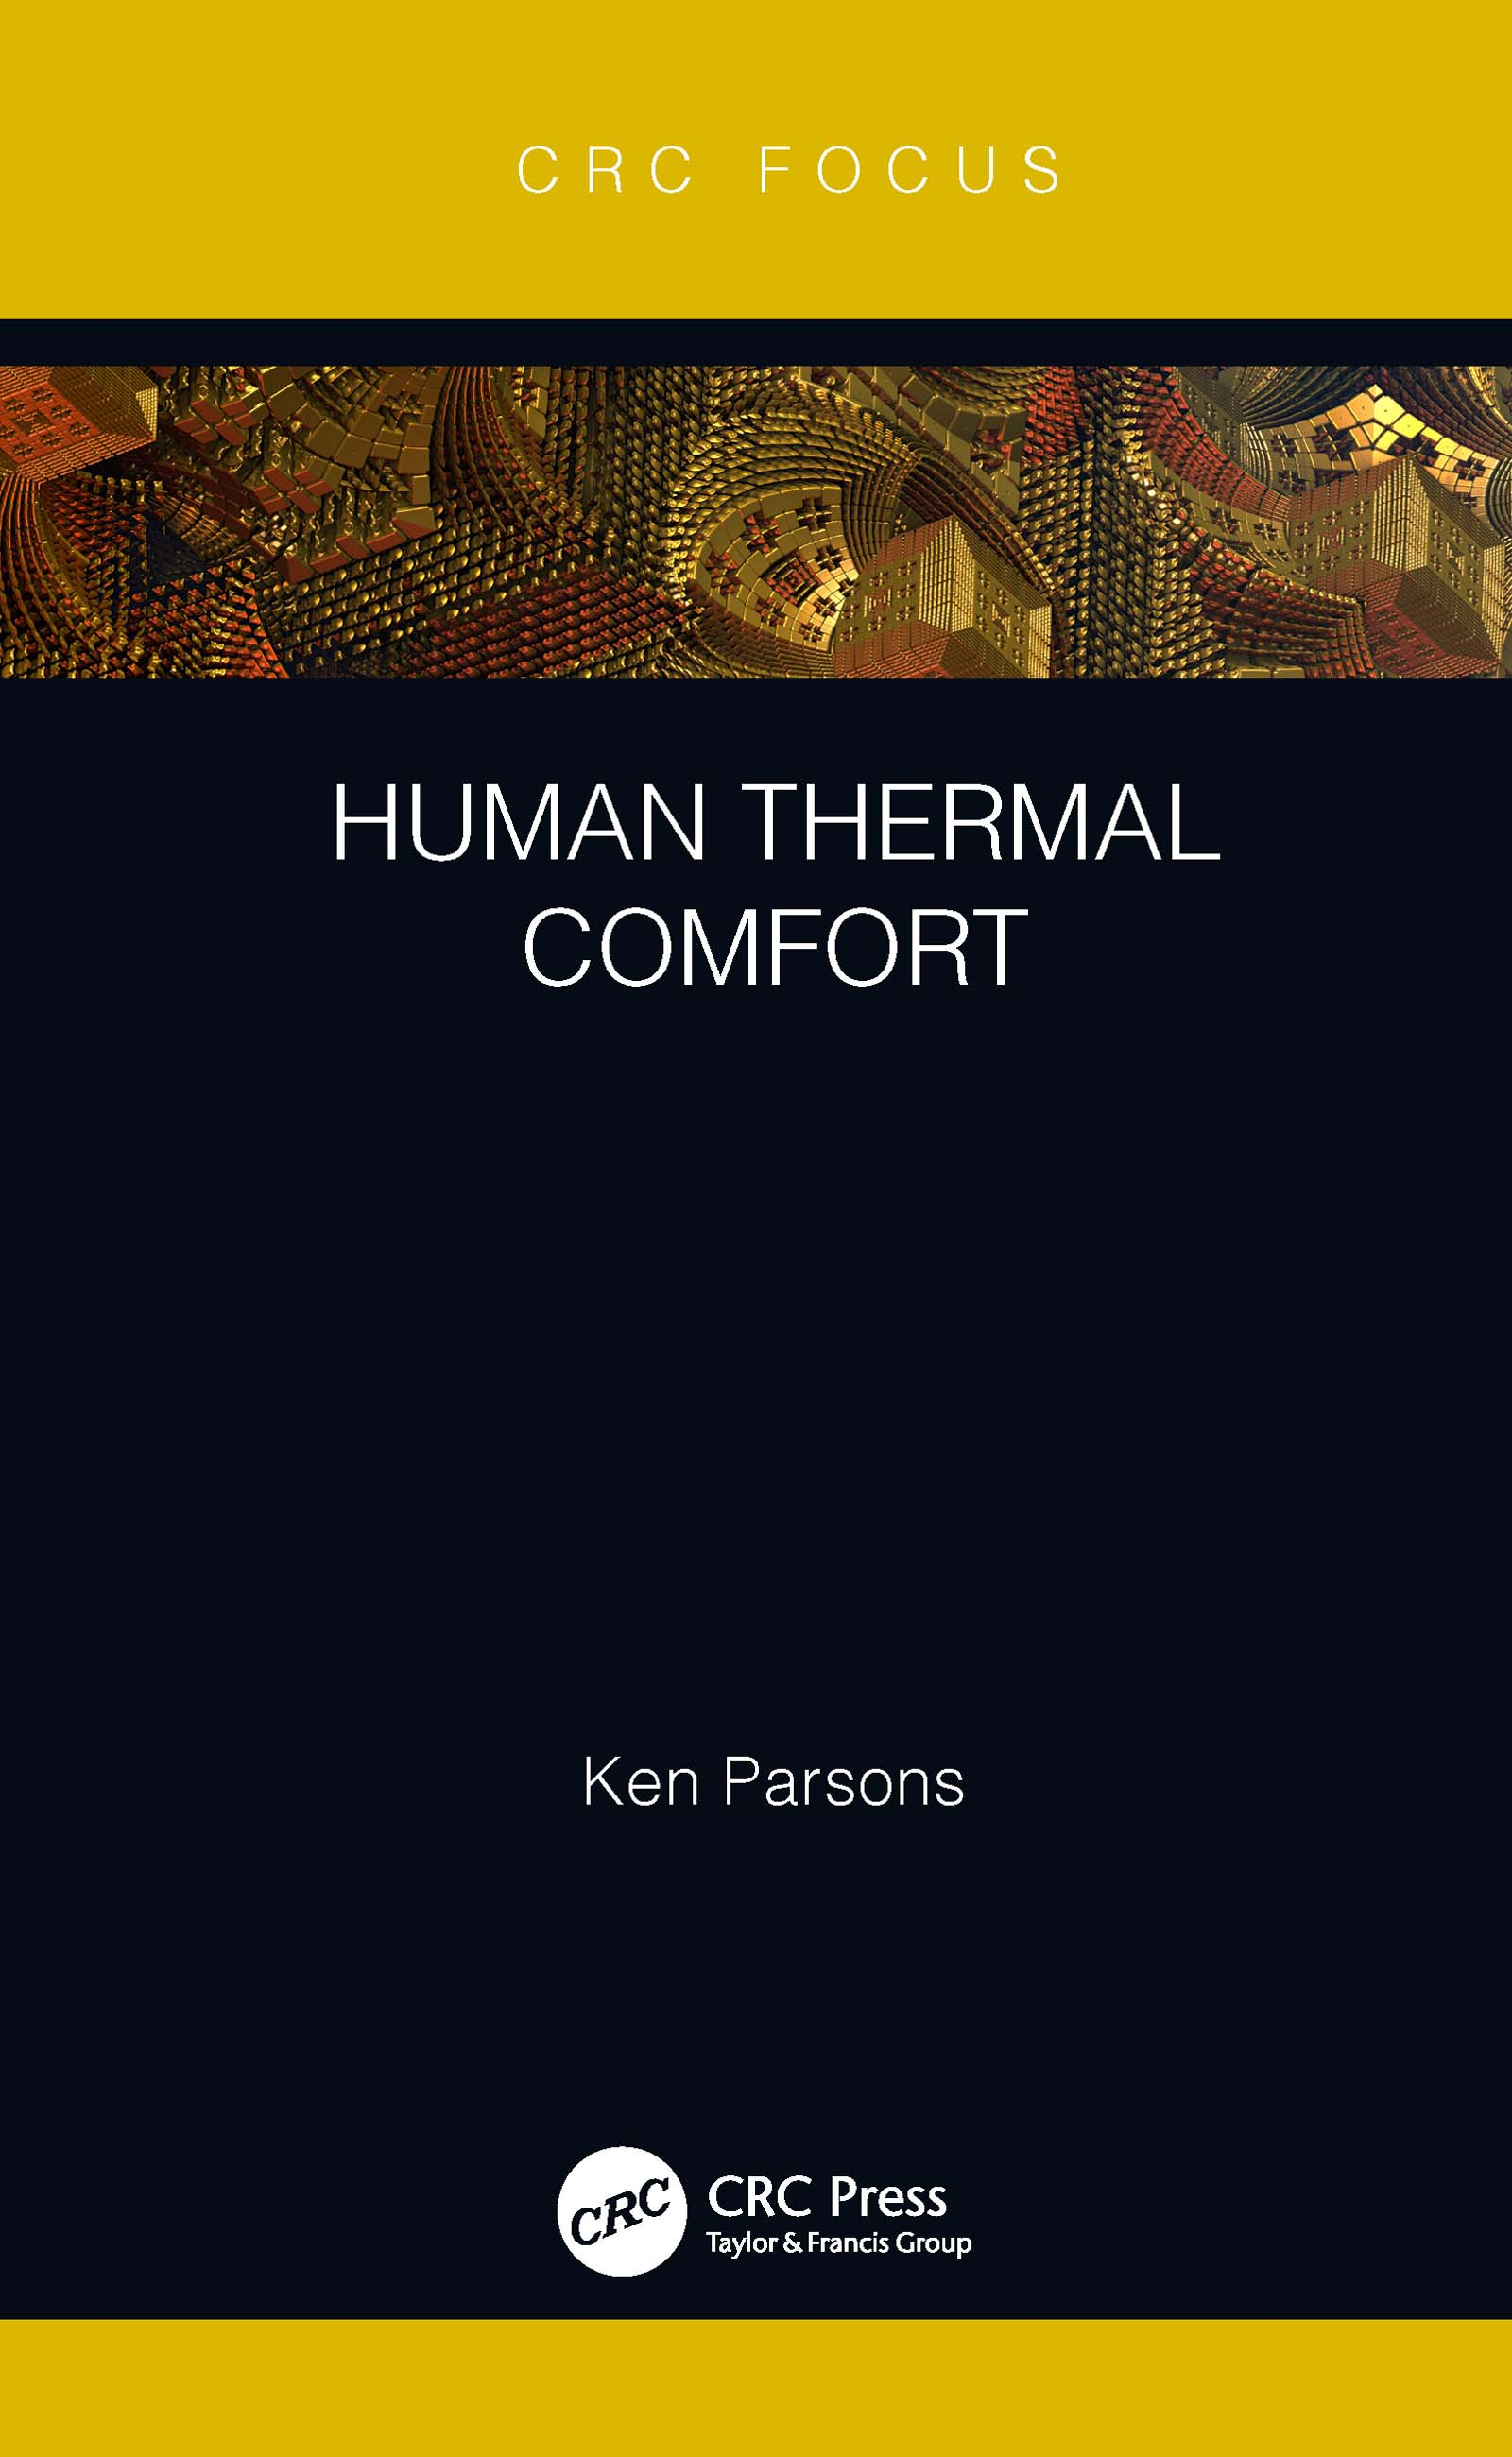 Human Thermal Comfort book cover